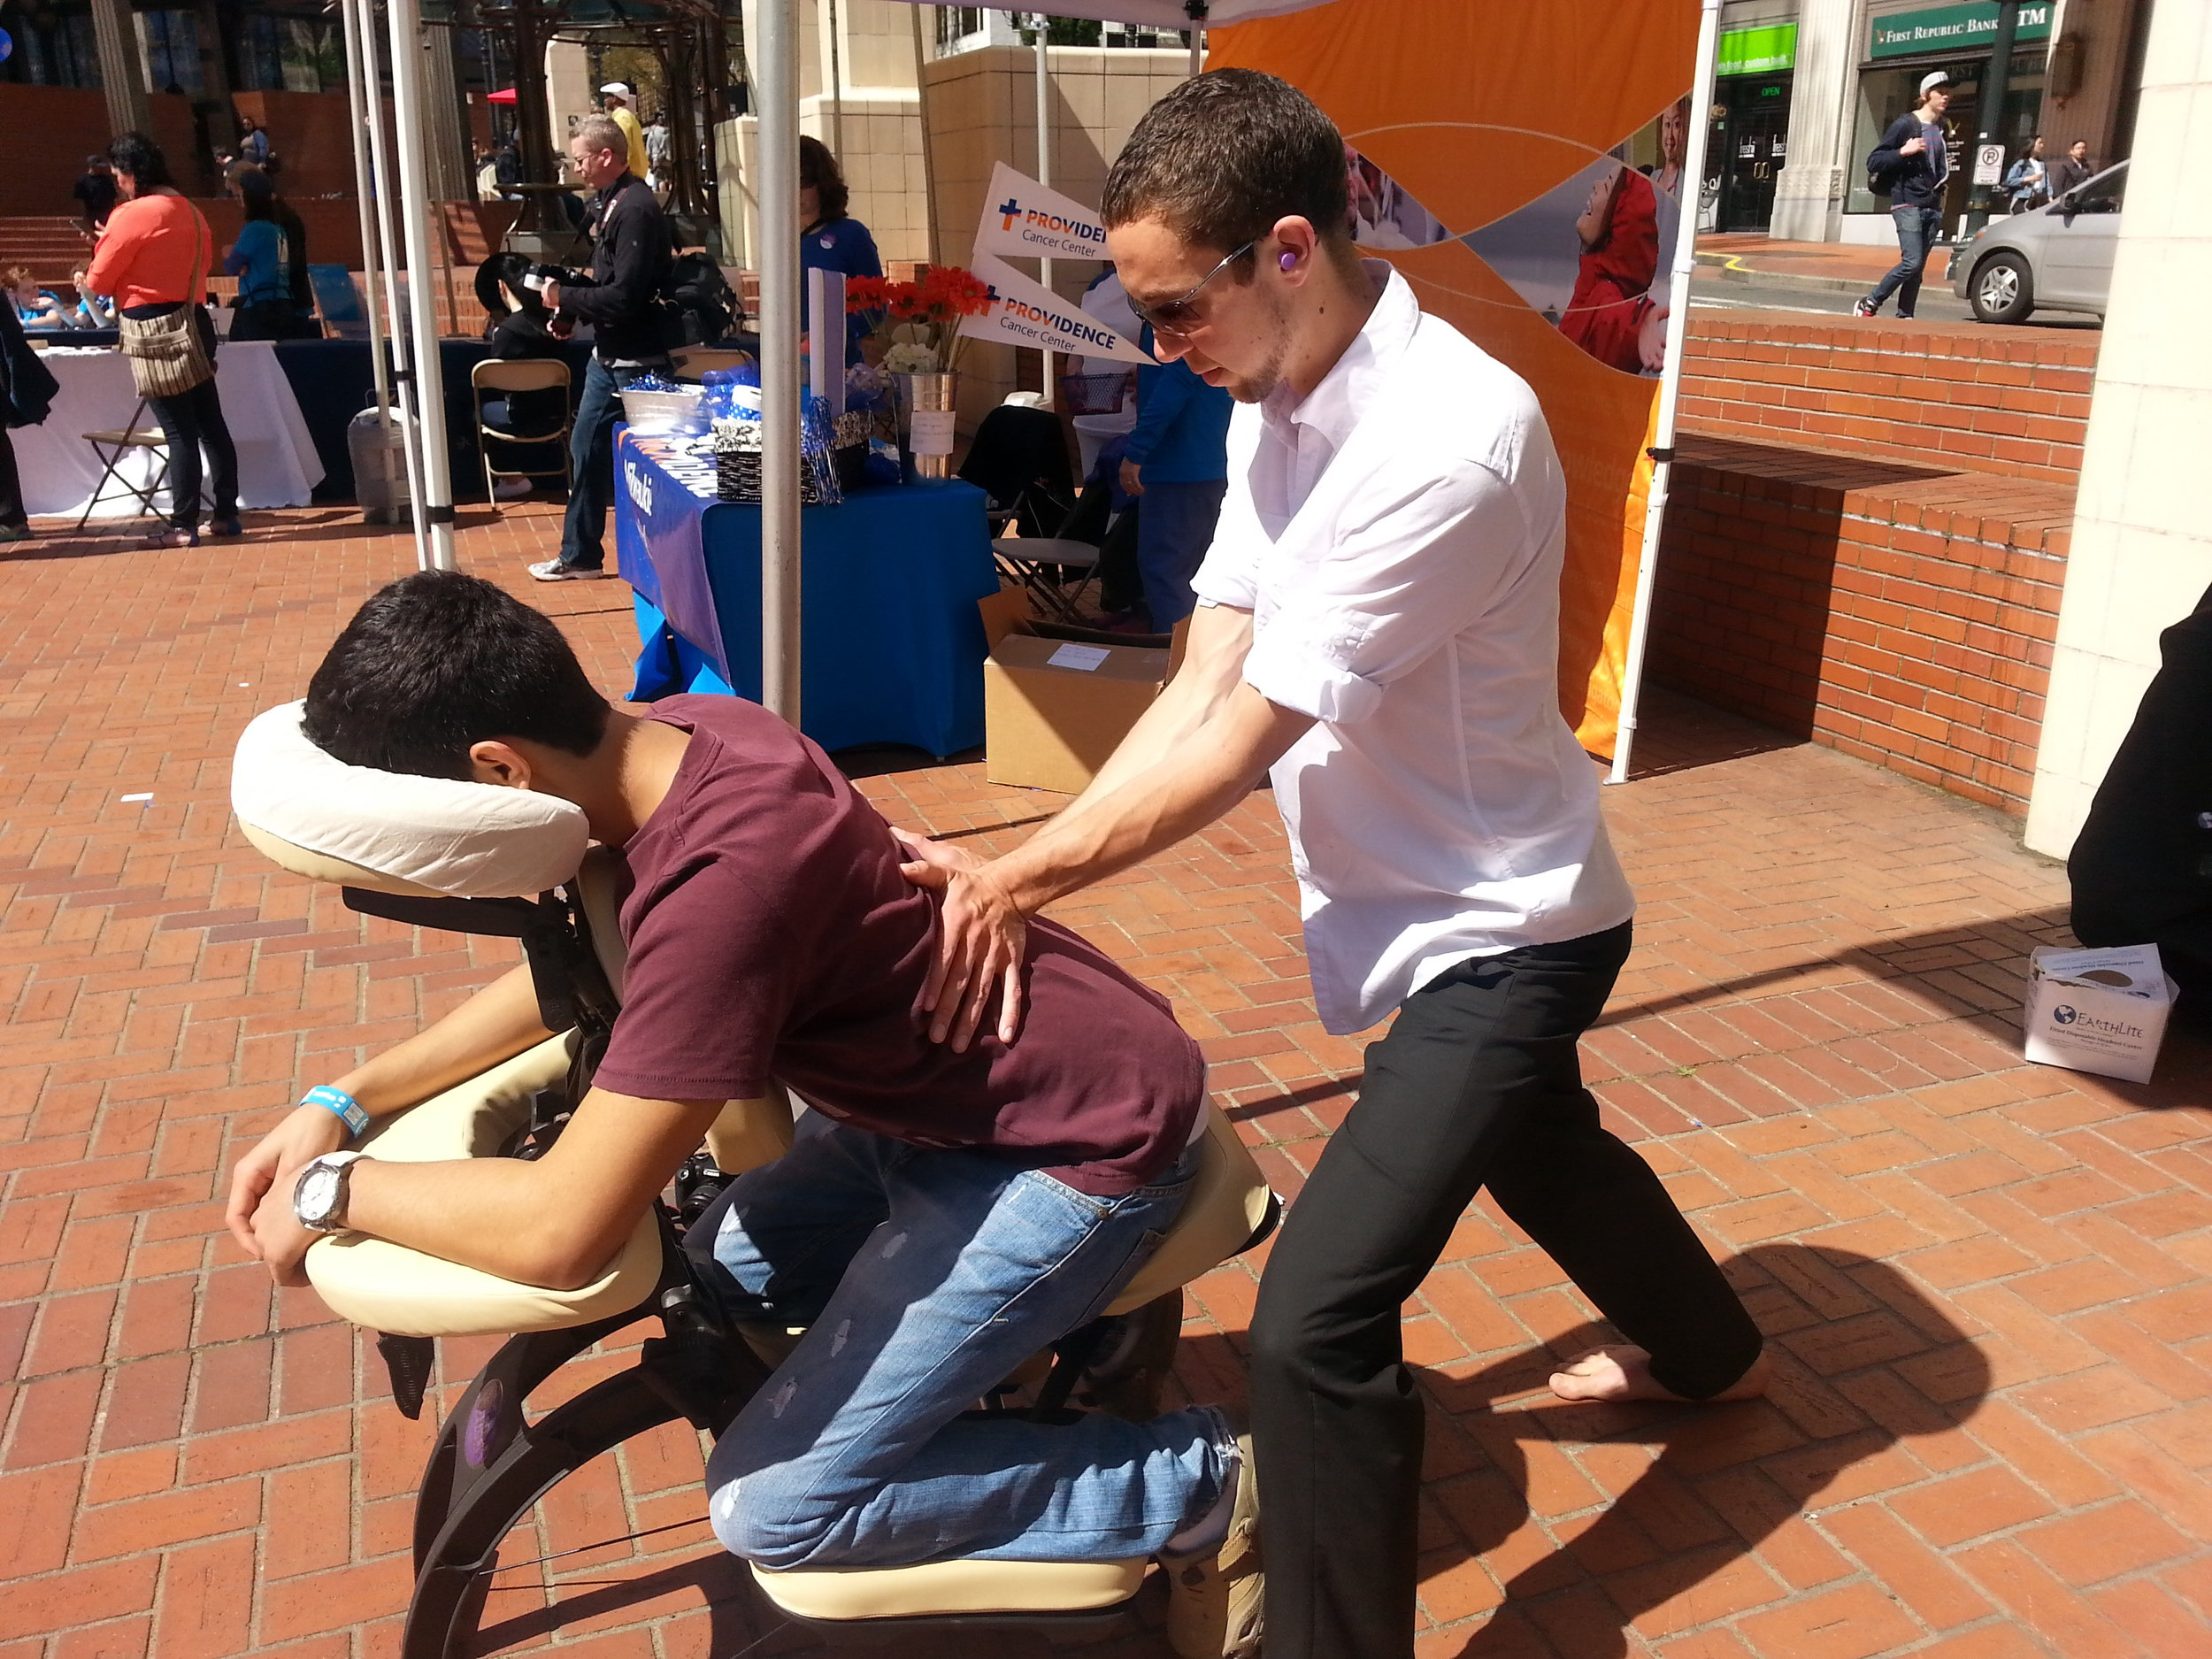 Event Massage, this time out doors.